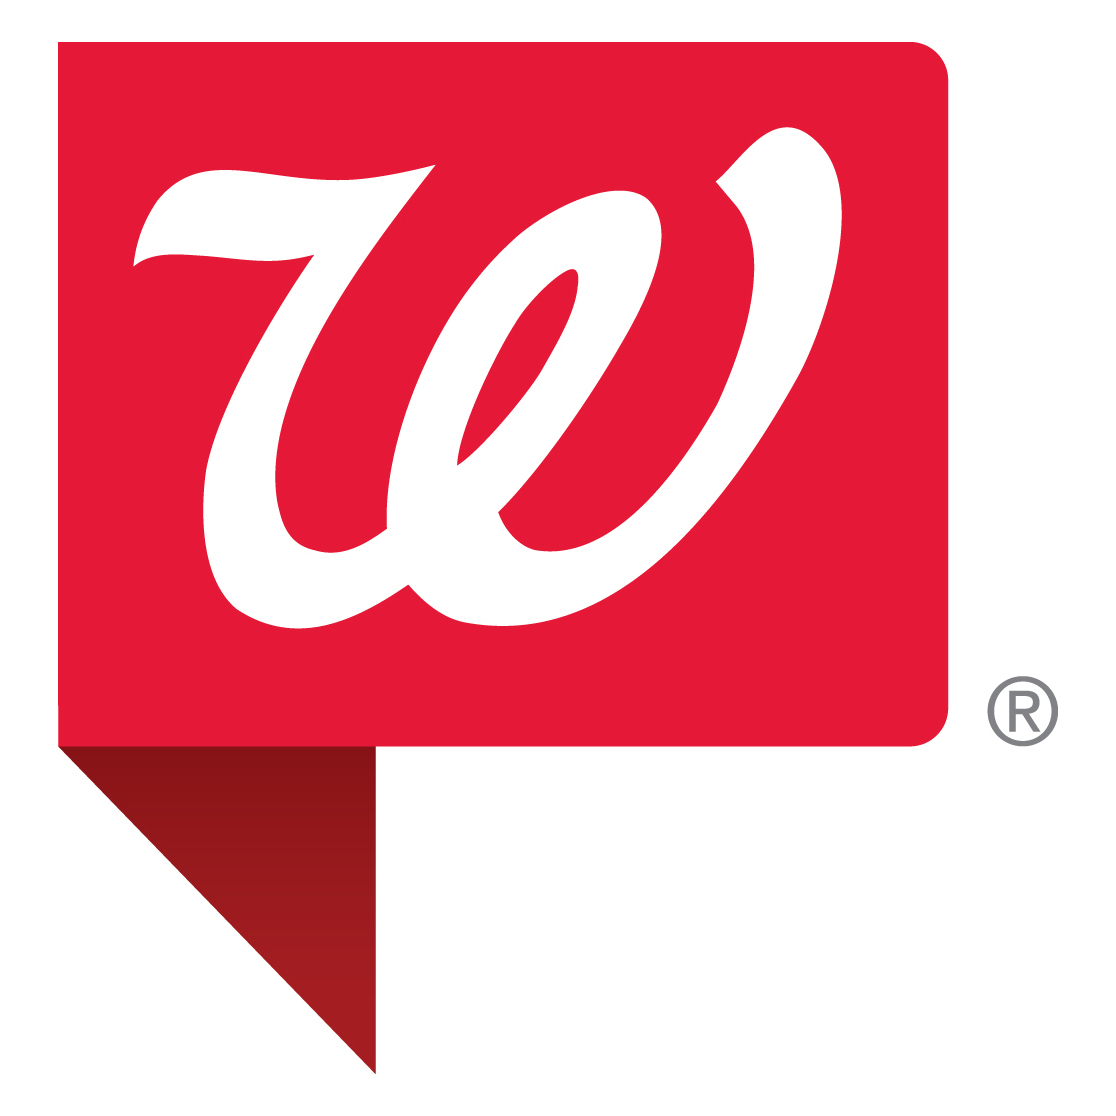 Walgreens - Corning, NY - Pharmacist